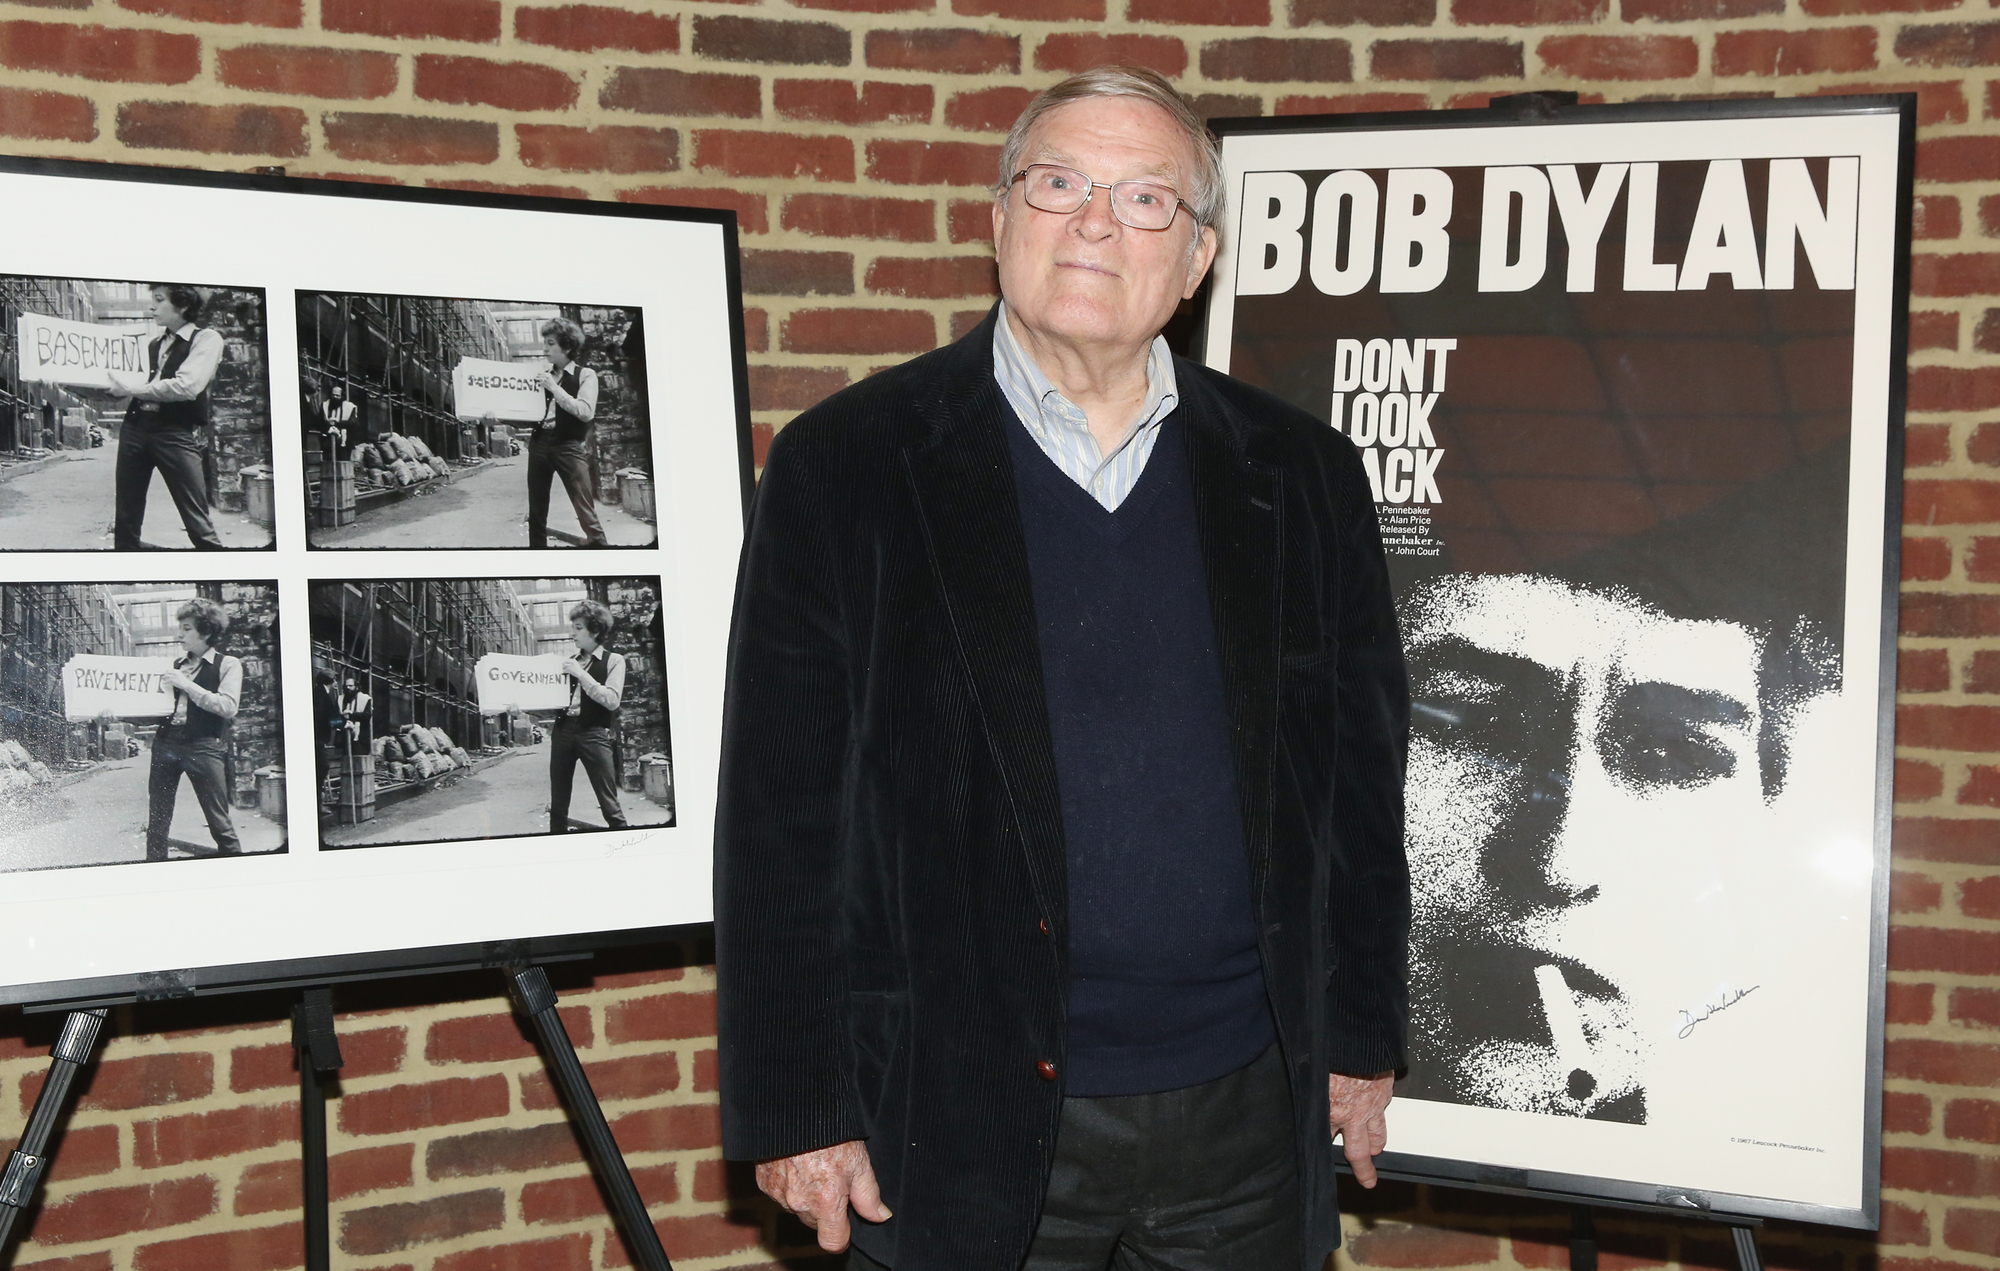 D.A. Pennebaker, director of films by Bob Dylan and David Bowie, has died